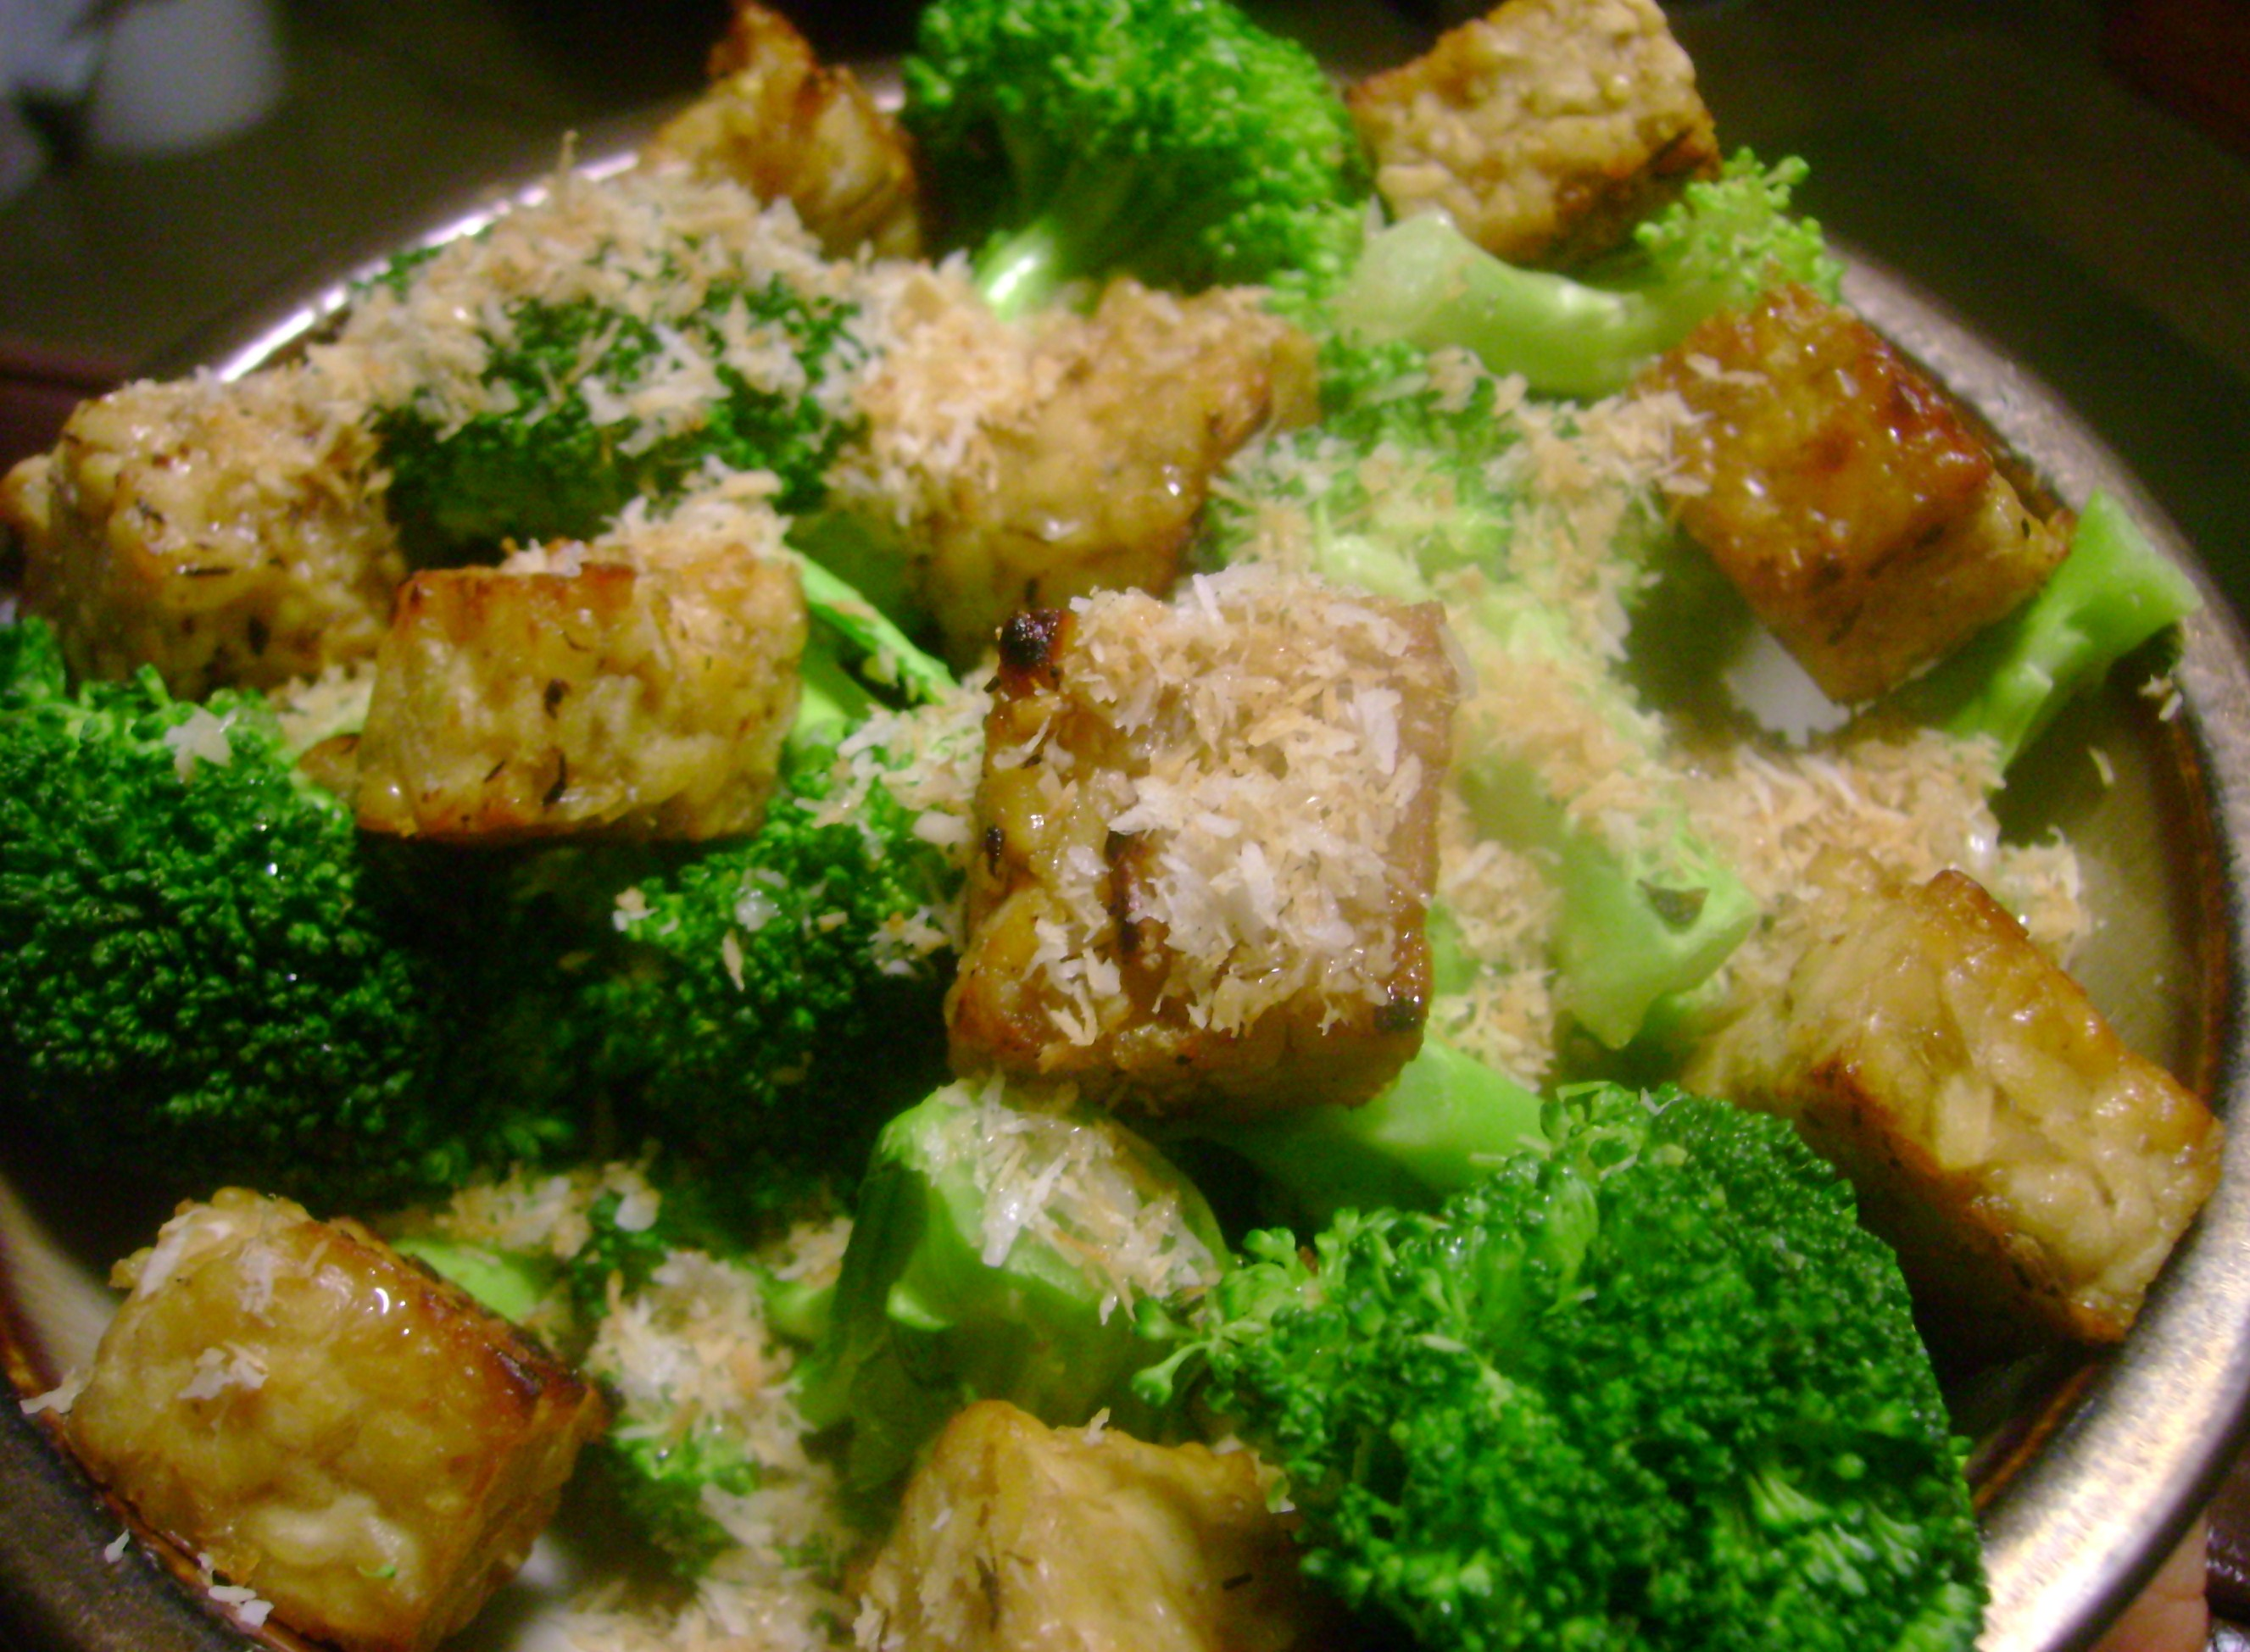 Stir-Fried Tempeh With Broccoli And Peppers